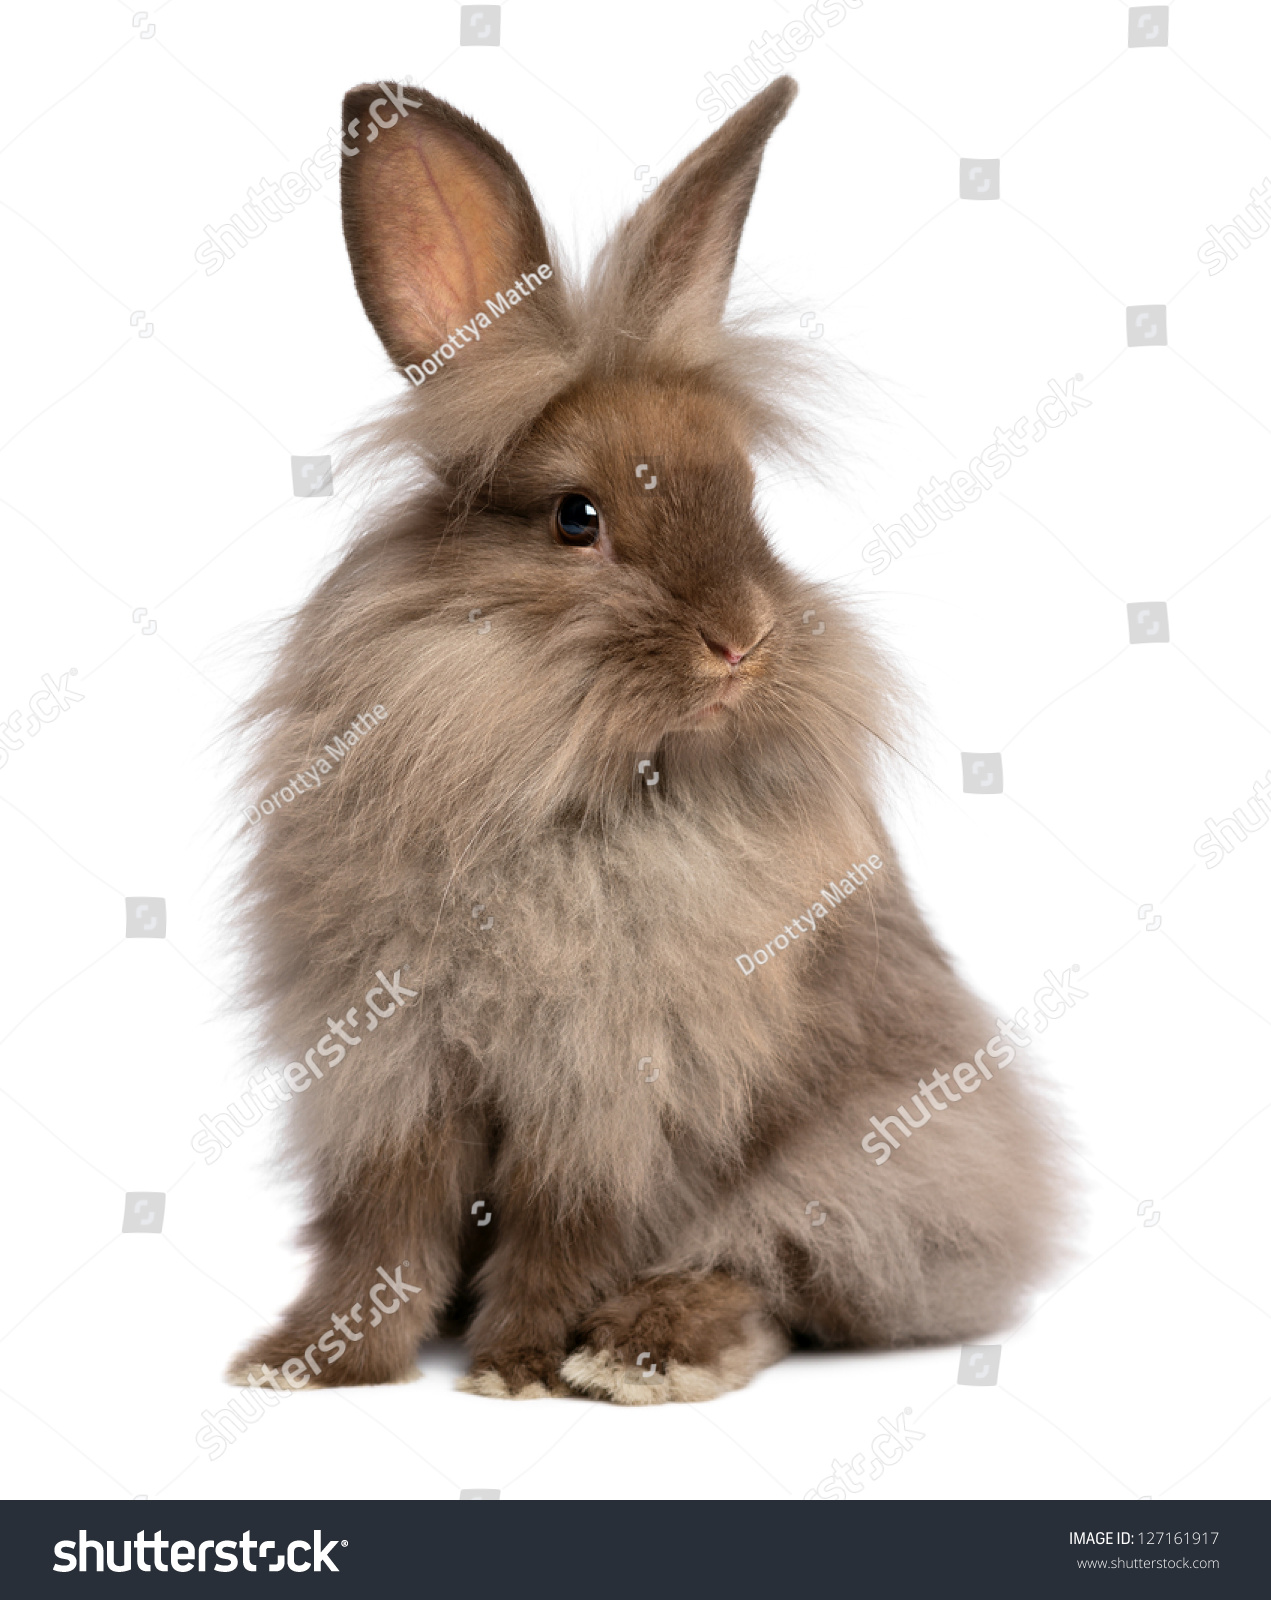 Brown and white lionhead rabbit - photo#53